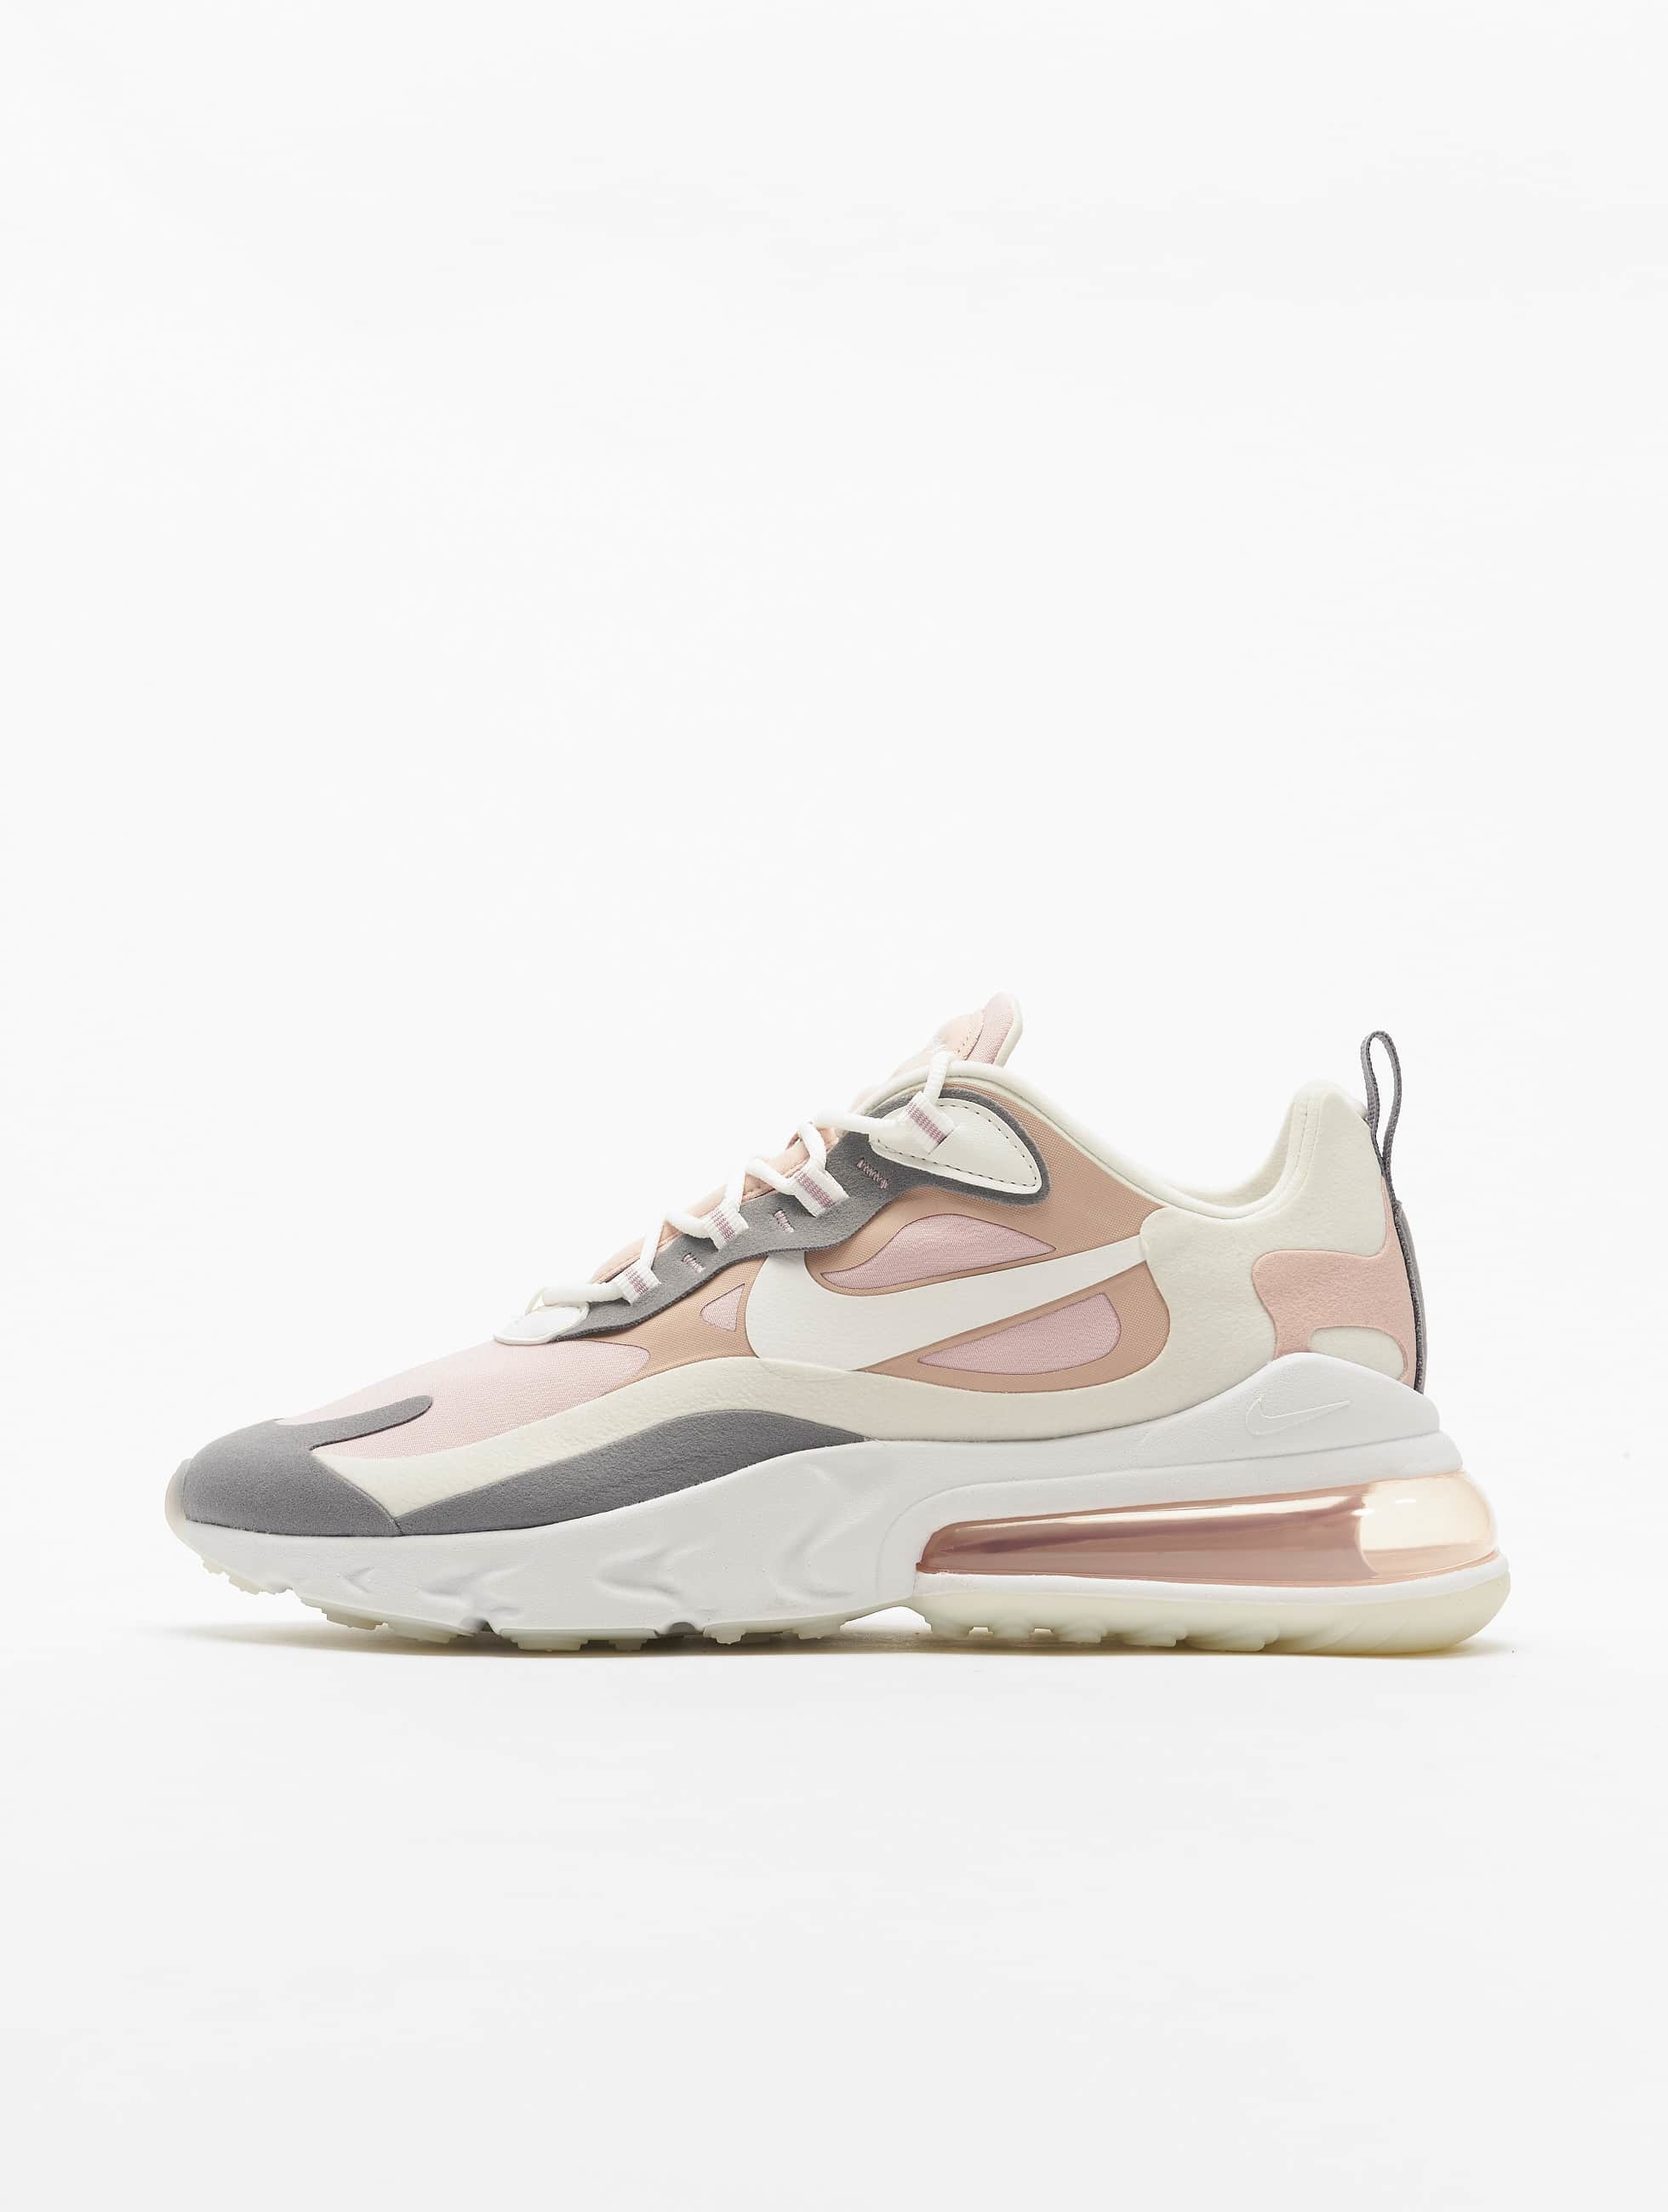 W M2K Tekno Sneaker in Summit WhiteBarely Rose | Sneakers